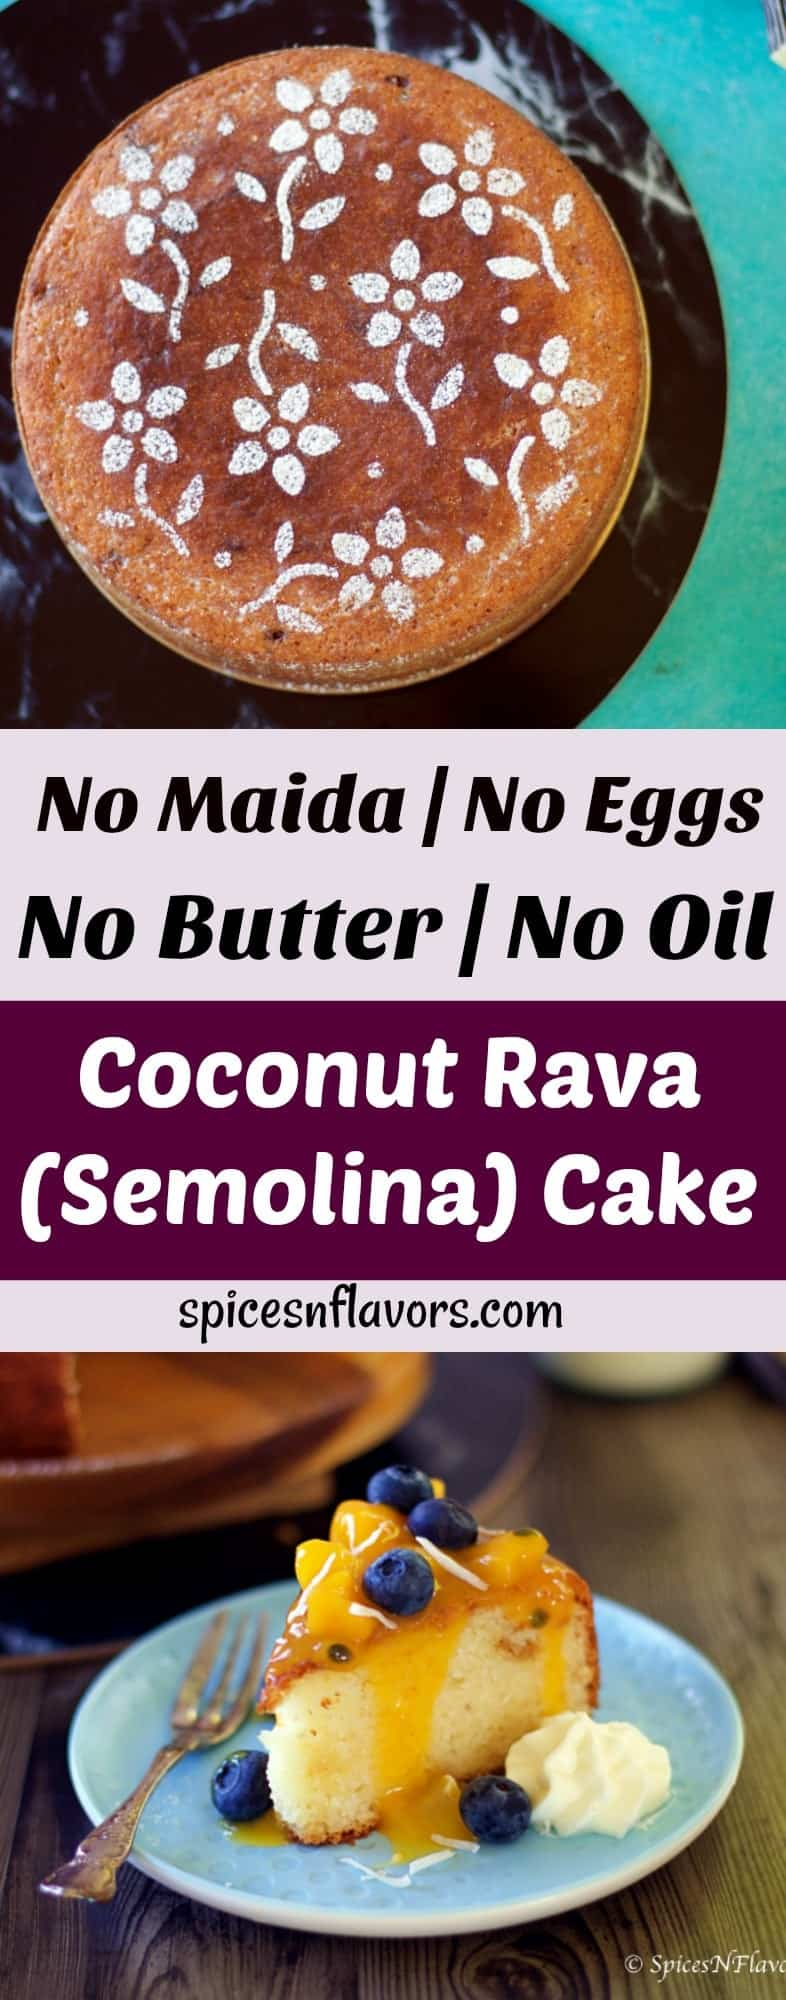 coconut rava cake semolina cake how to make flourless cake how to make a cake without maida no butter cake no oil cake basbousa cake goan baath cake eggless goan cake eggless goan coconut cake eggless basbousa cake eggless coconut rava cake photography